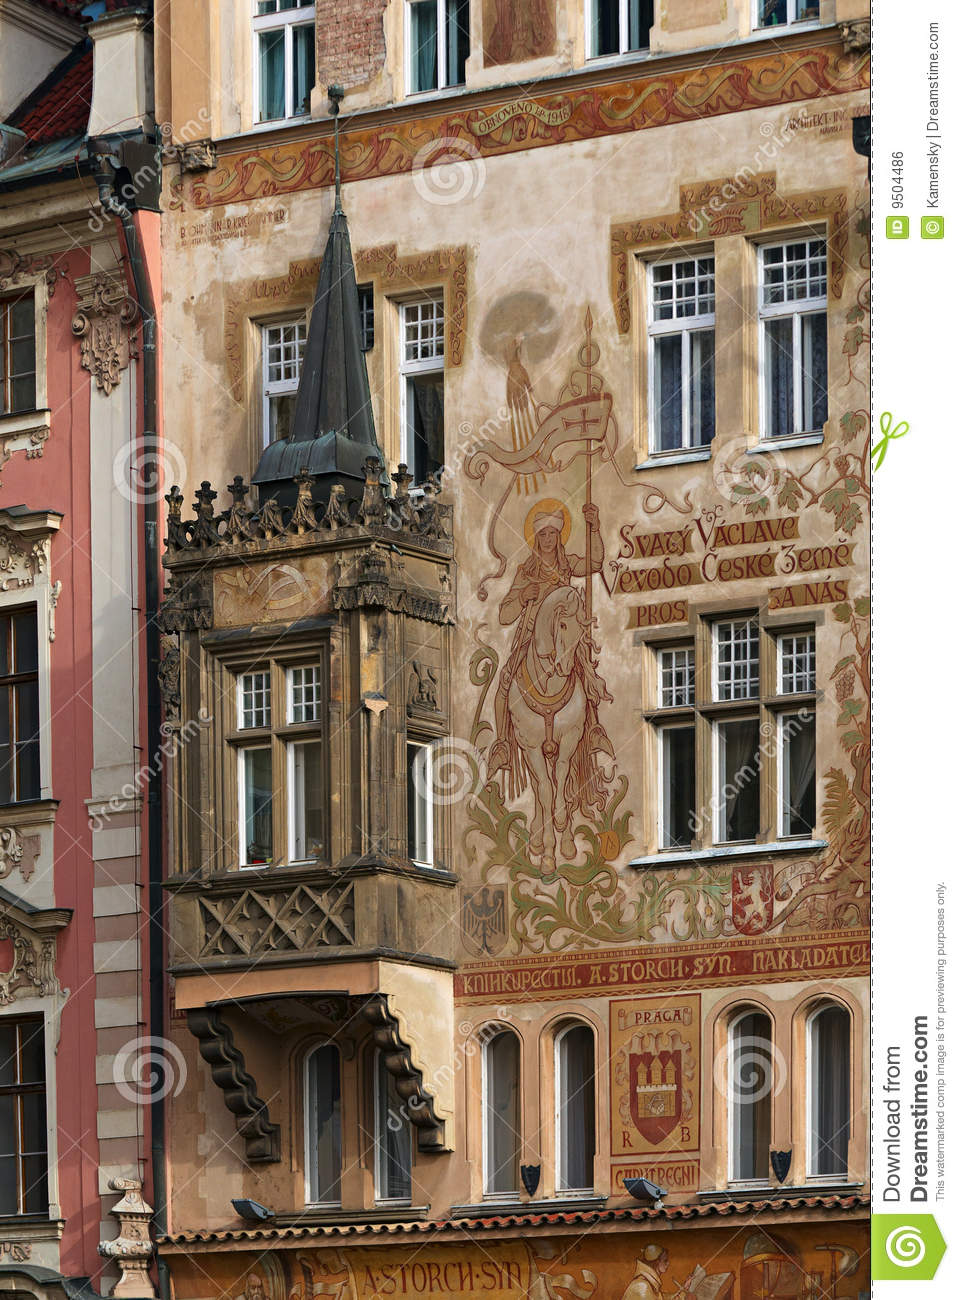 Exterior painting royalty free stock image image 9504486 - Painting old houses exterior concept ...